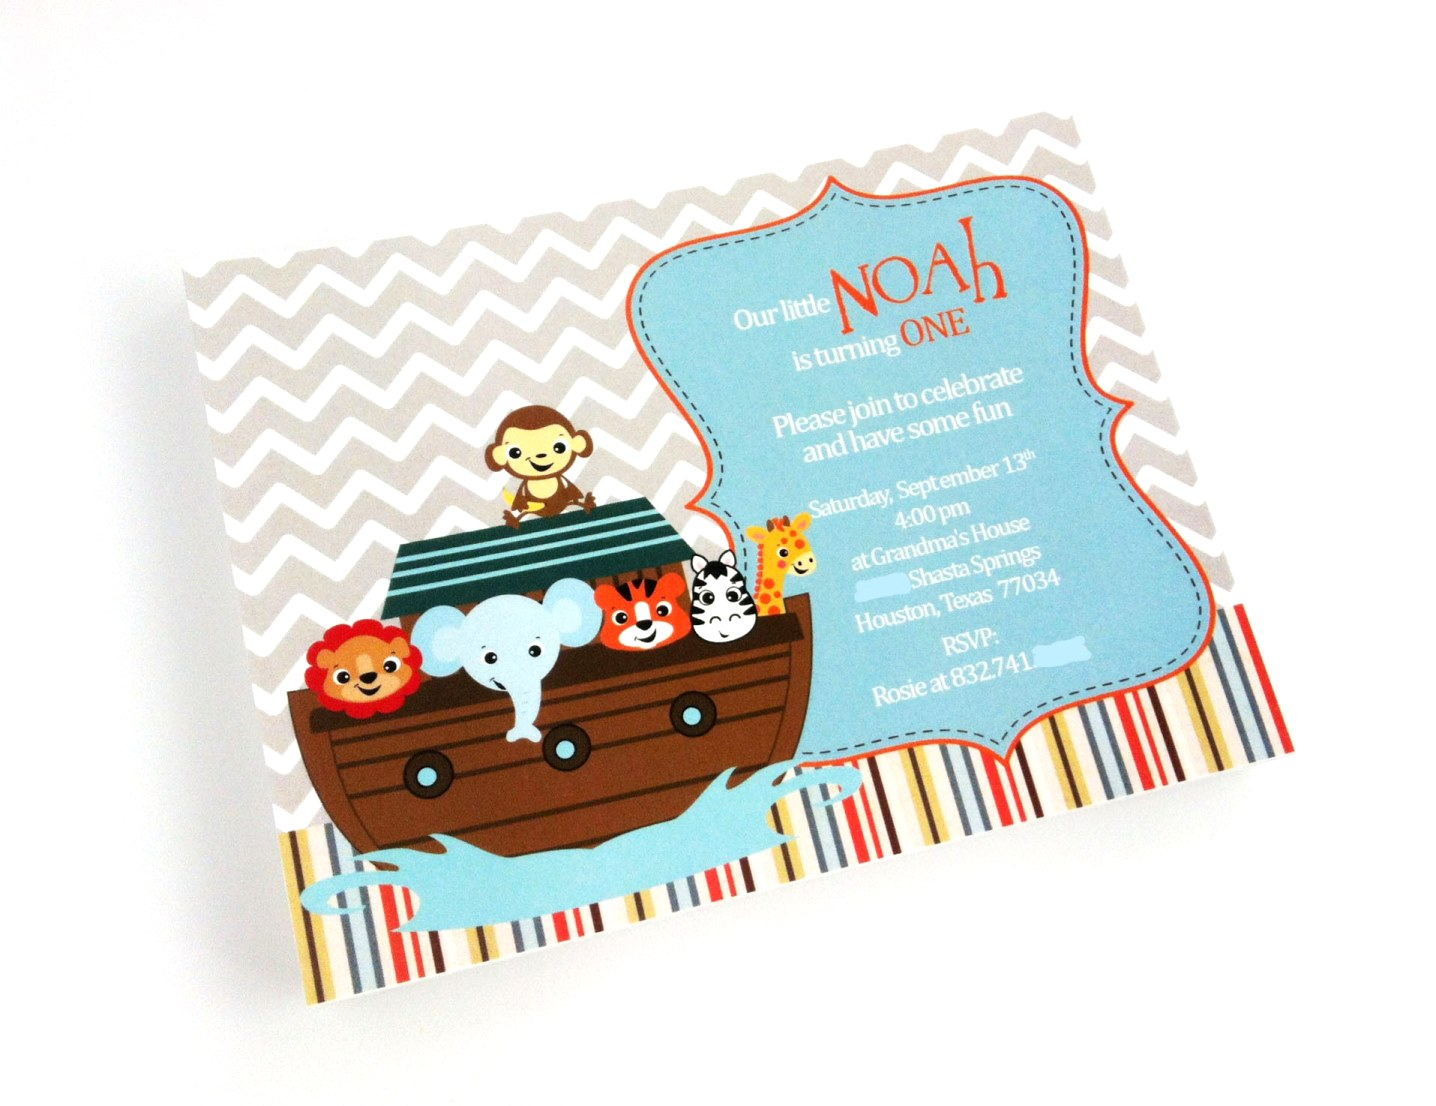 Noah's Ark Invitations for Baby Shower and Birthday ...